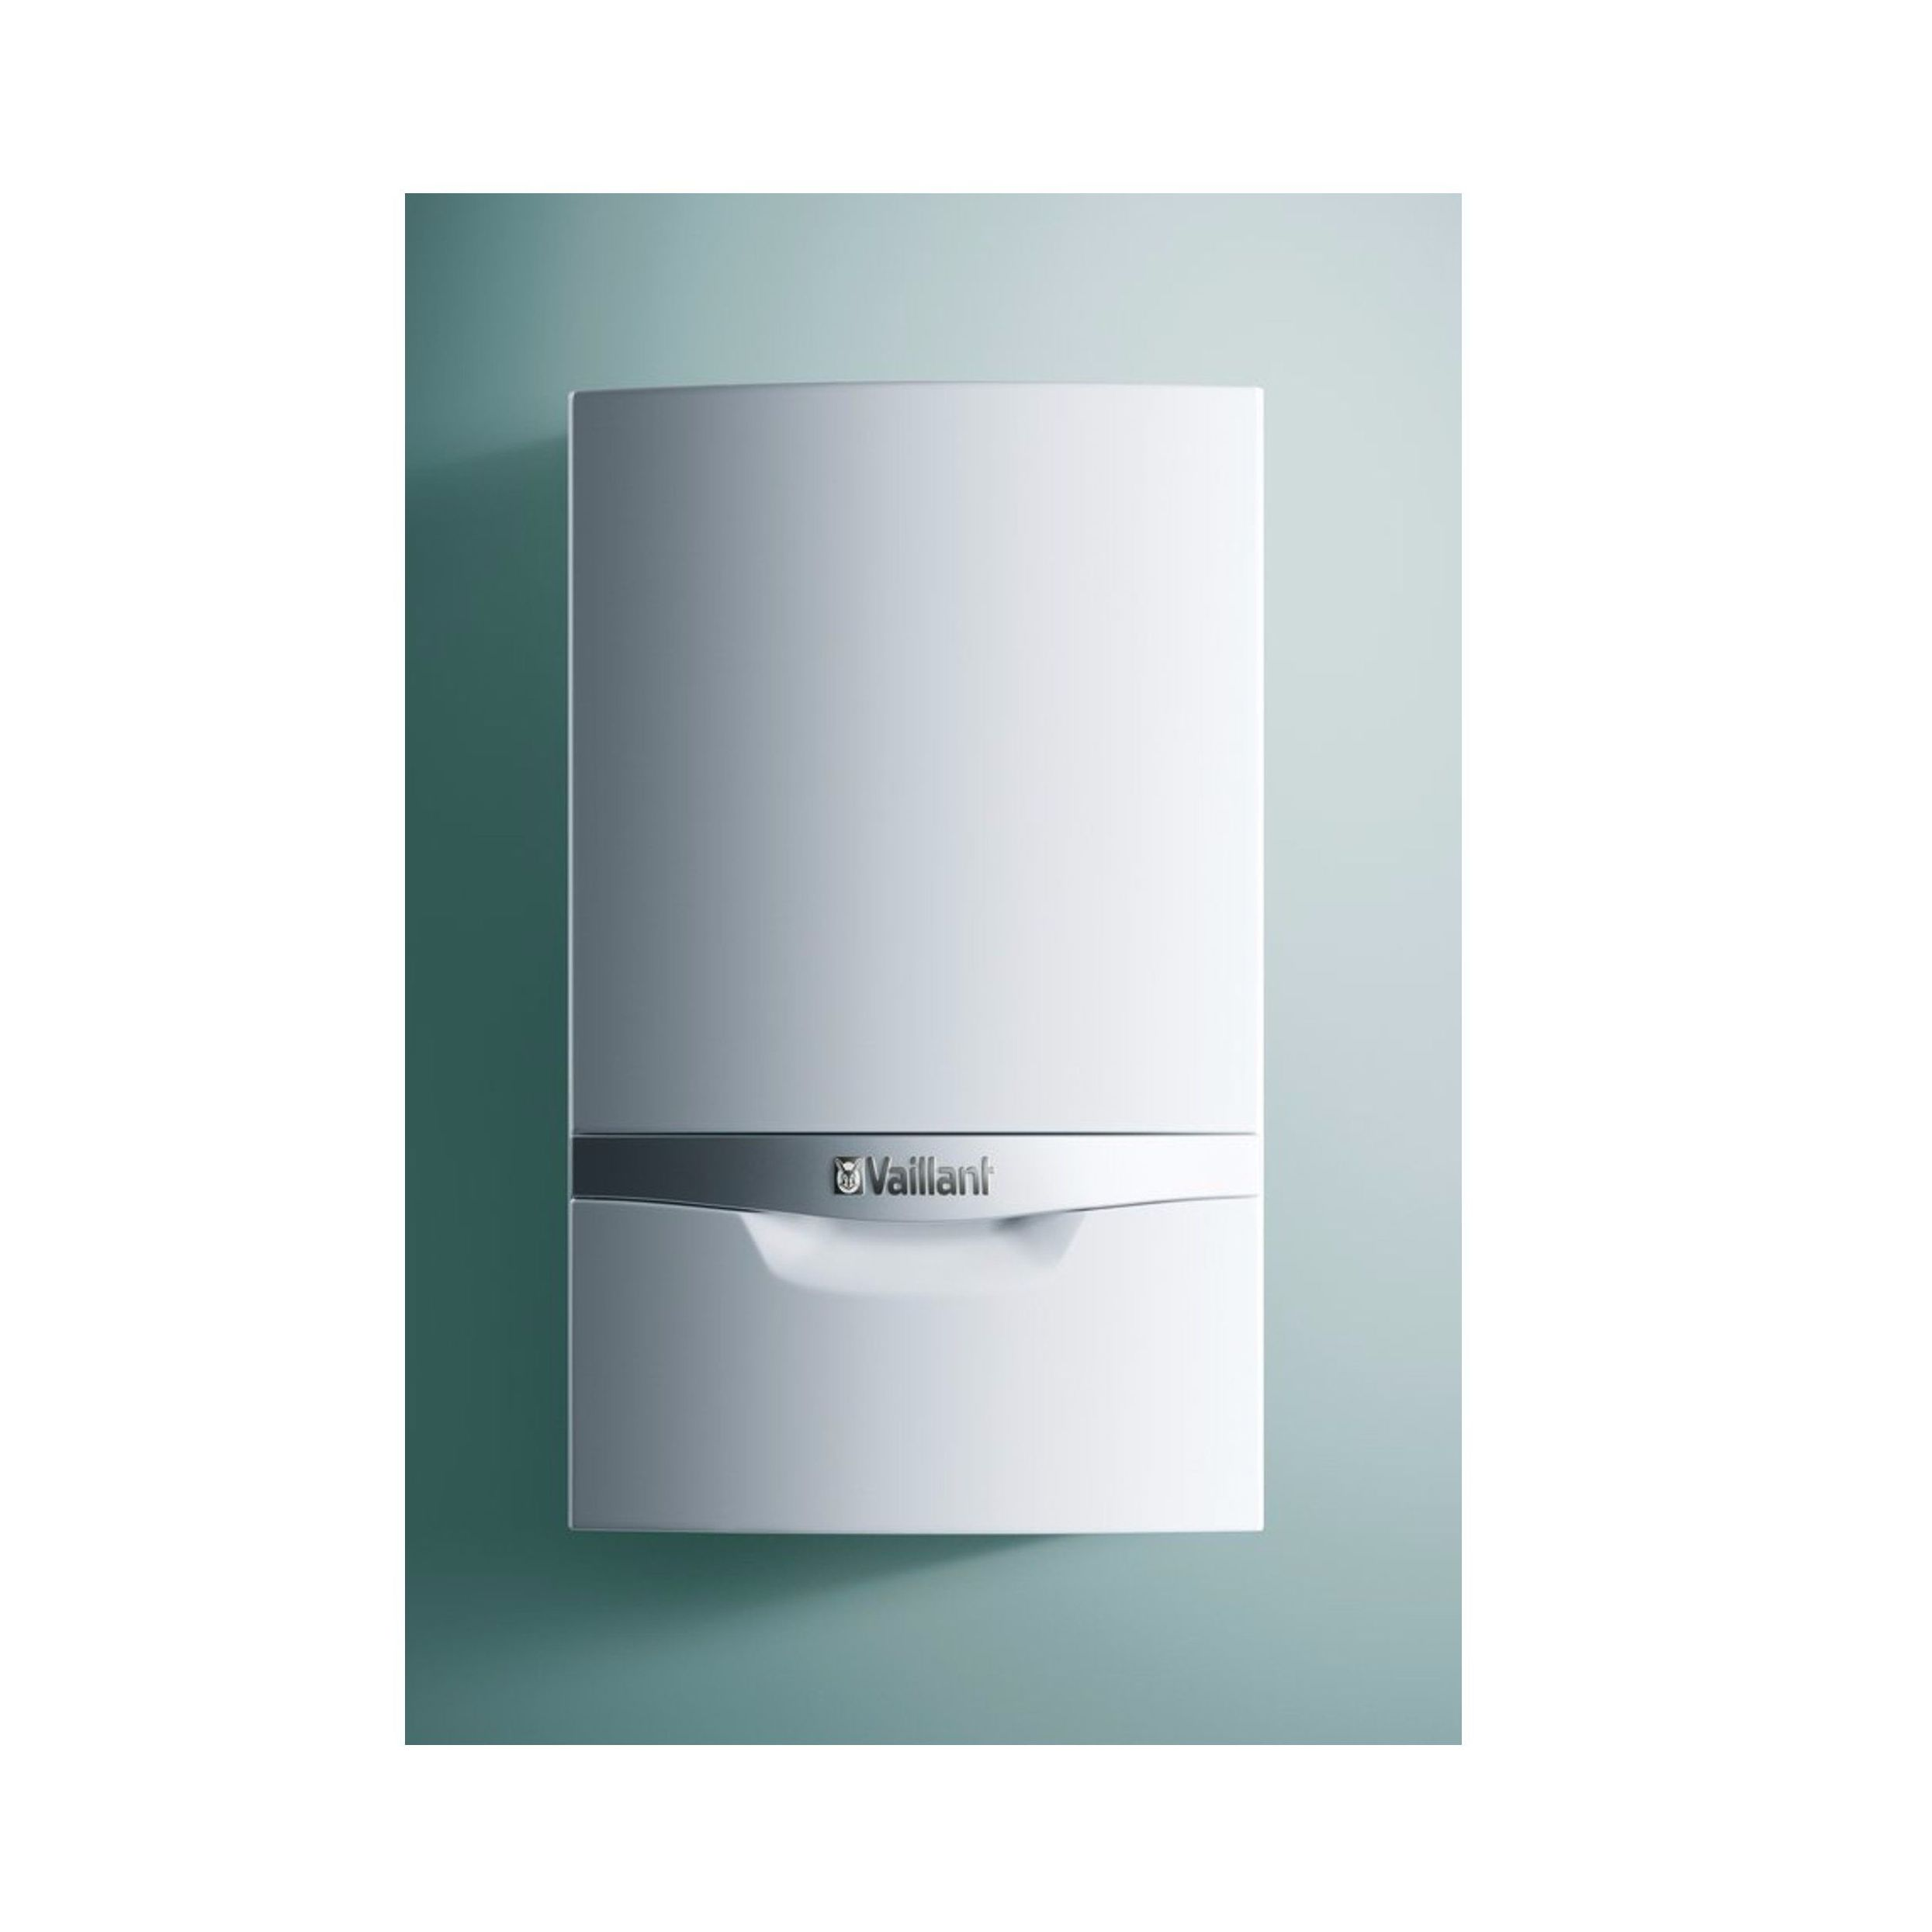 Vaillant  Eco Tec Plus 236: Productos de Valle Gas Clima }}